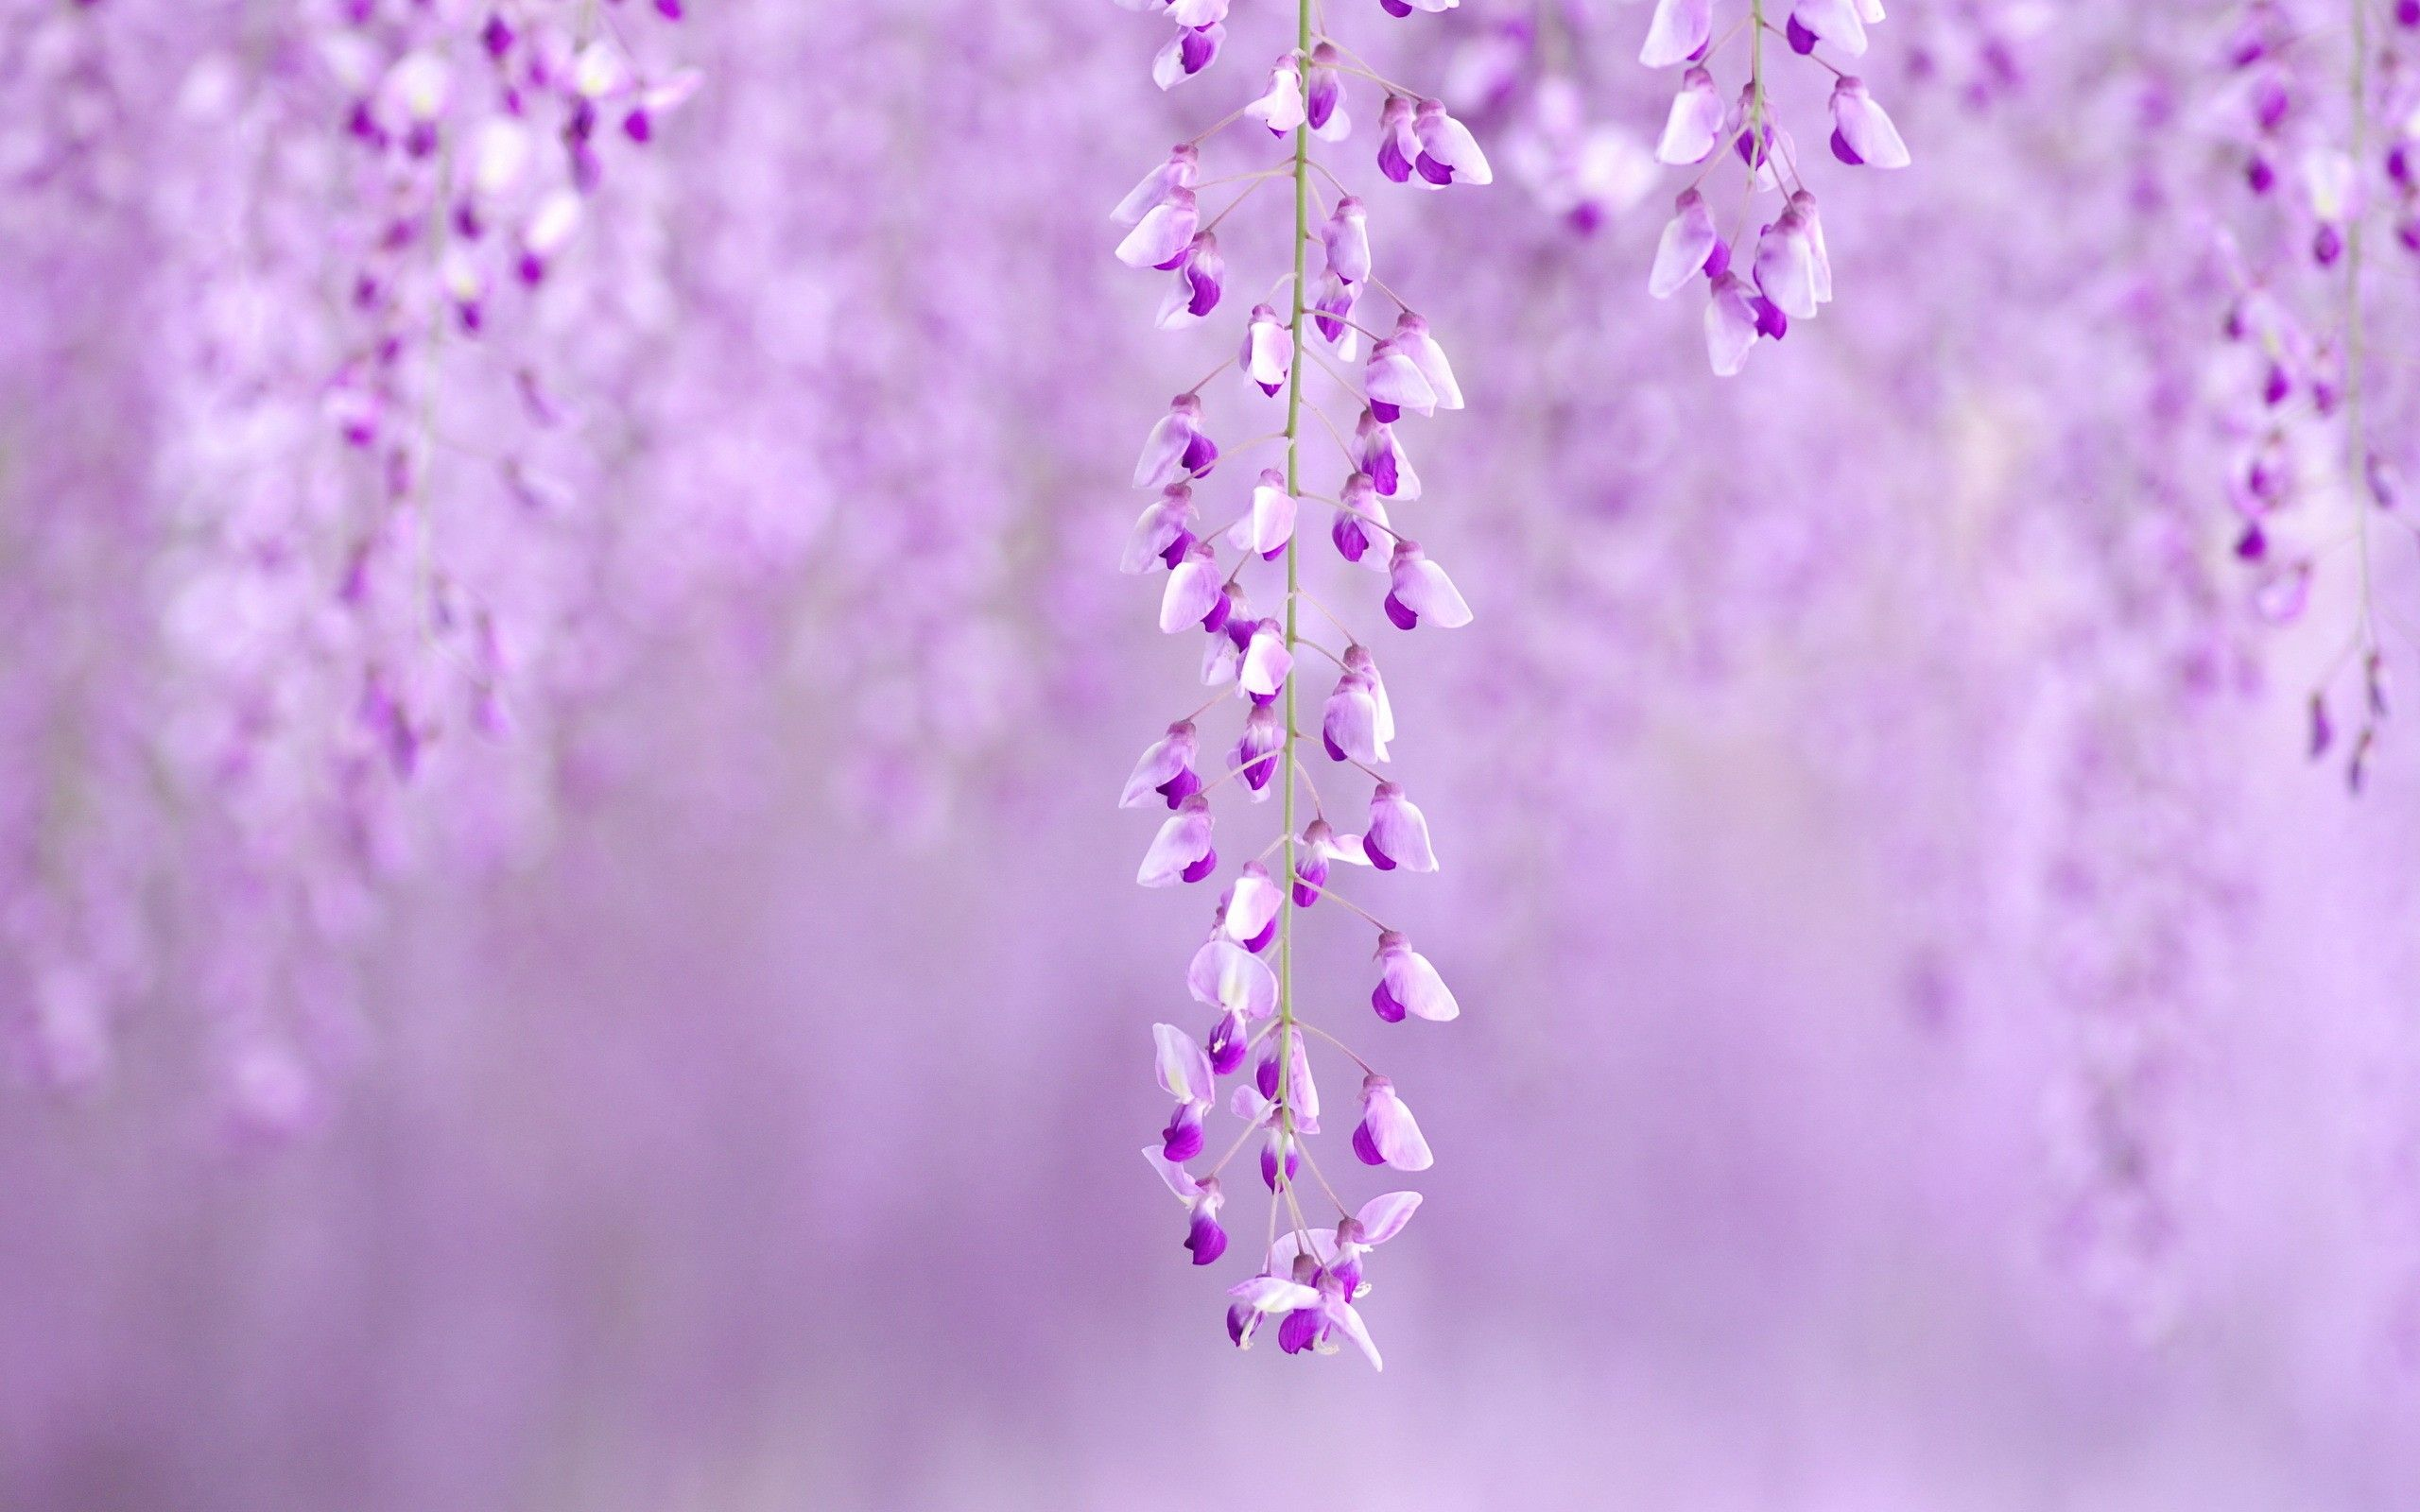 I Love Purple Wallpapers Hd Free 223915 Spring Flowers Background Purple Flowers Wallpaper Spring Flowers Wallpaper